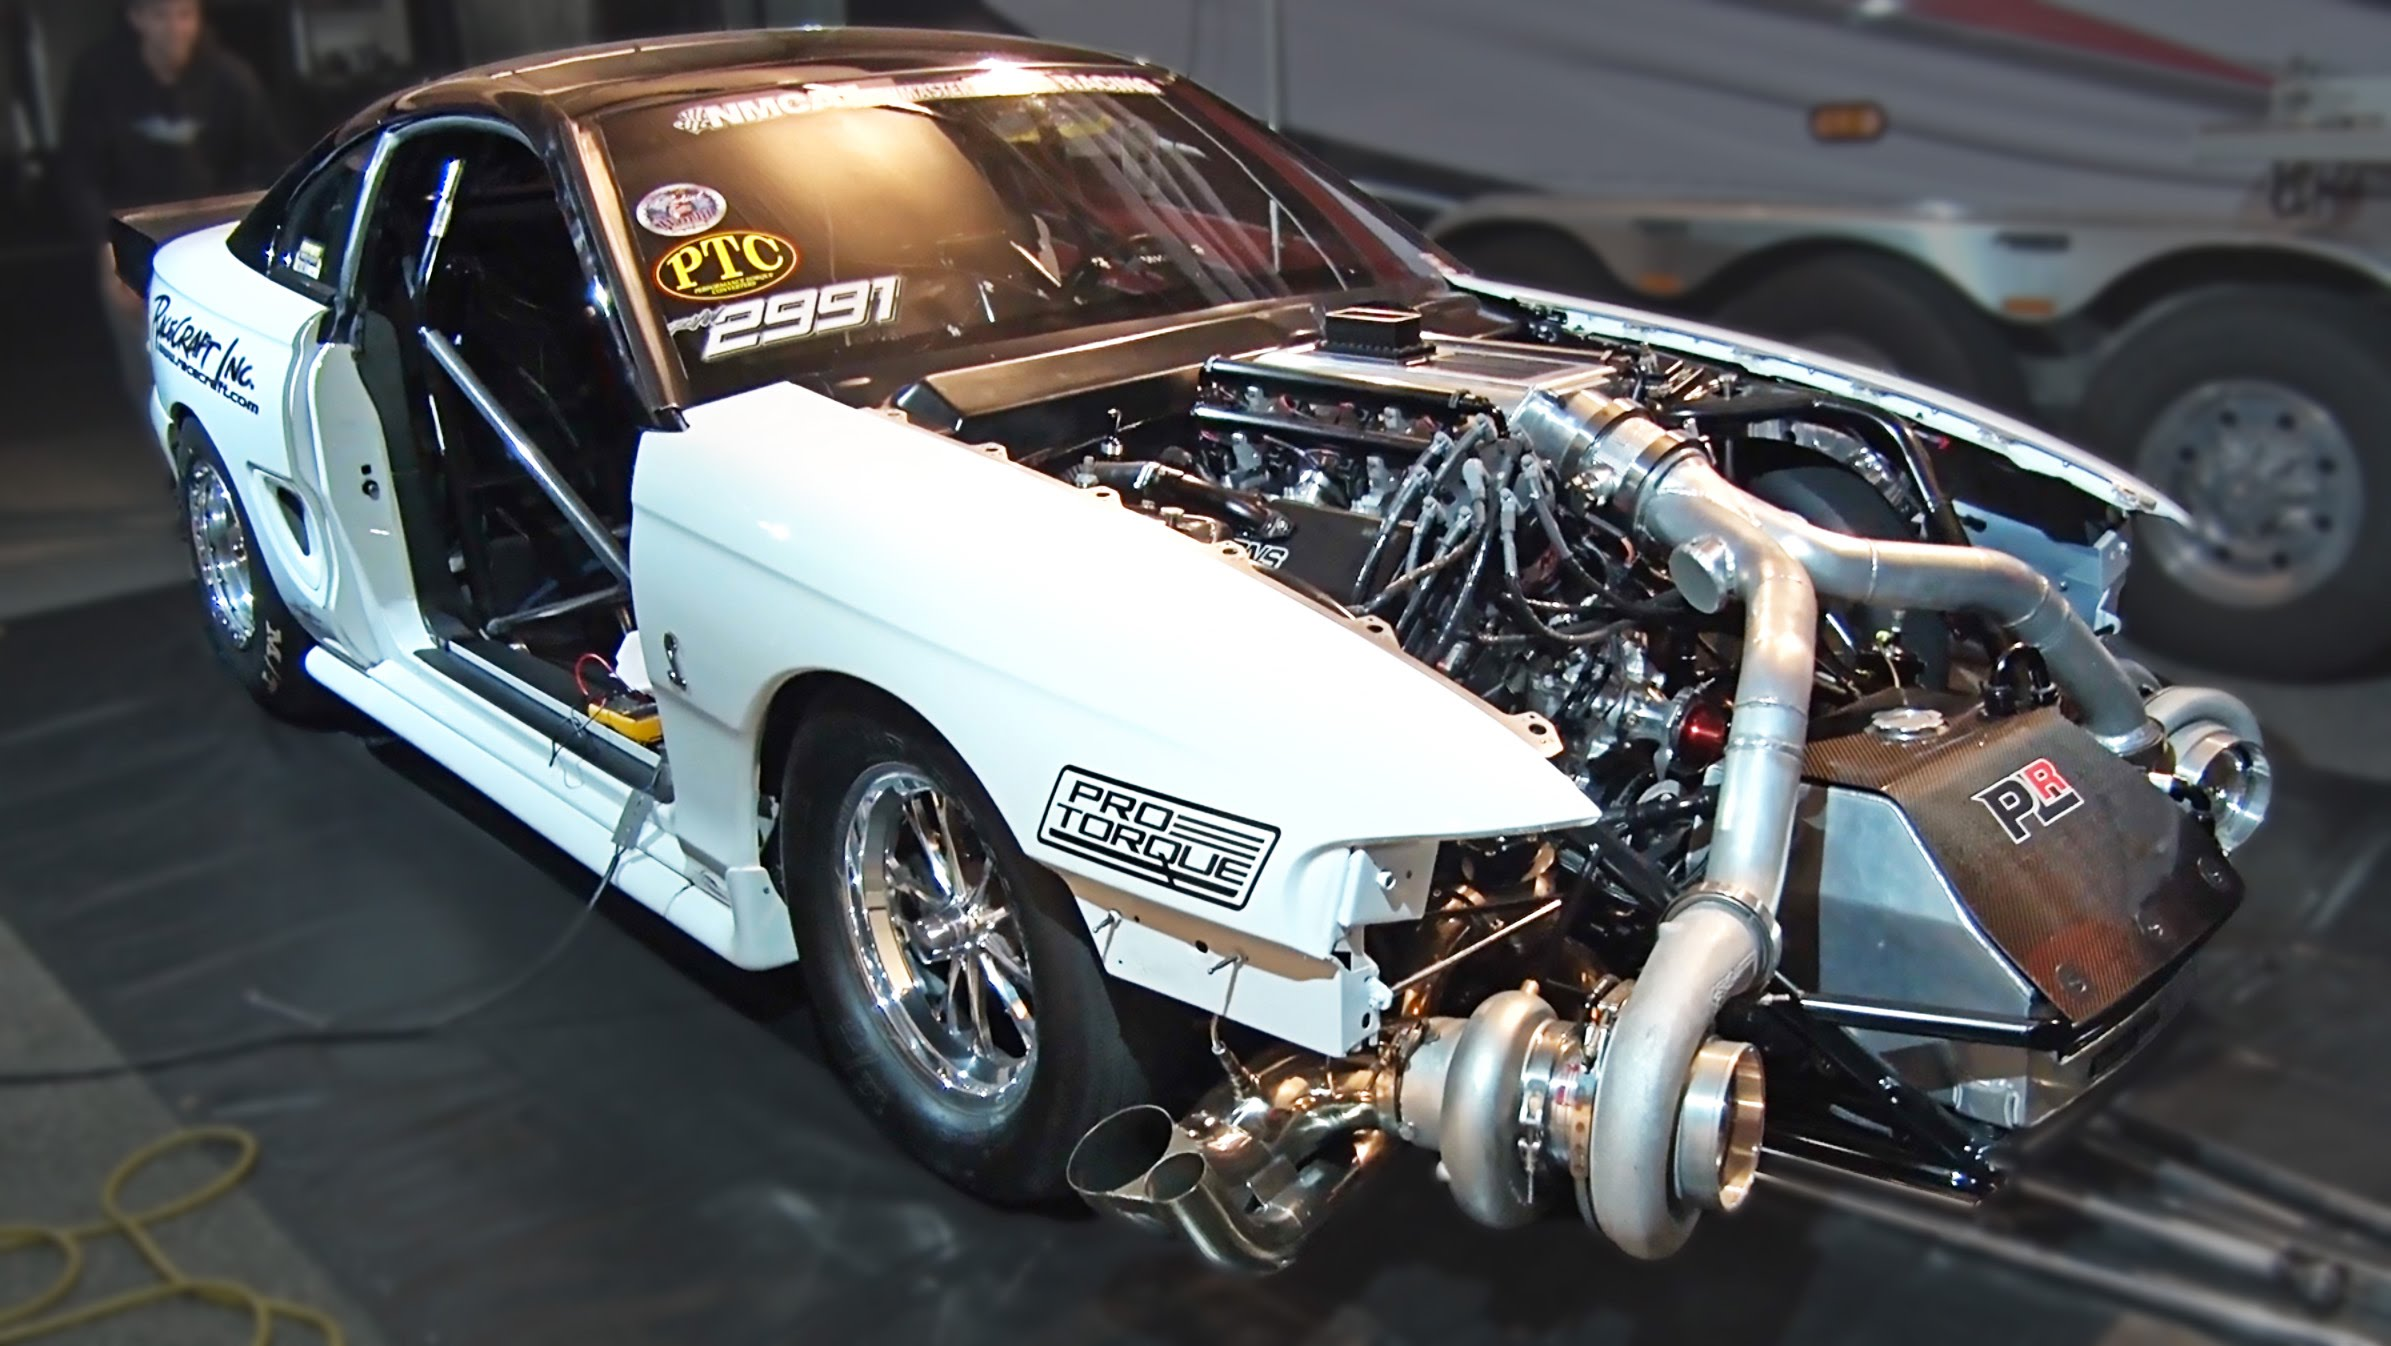 102MM Turbocharger + SN95 Ford Mustang = An Epic Twin Turbo Drag ...